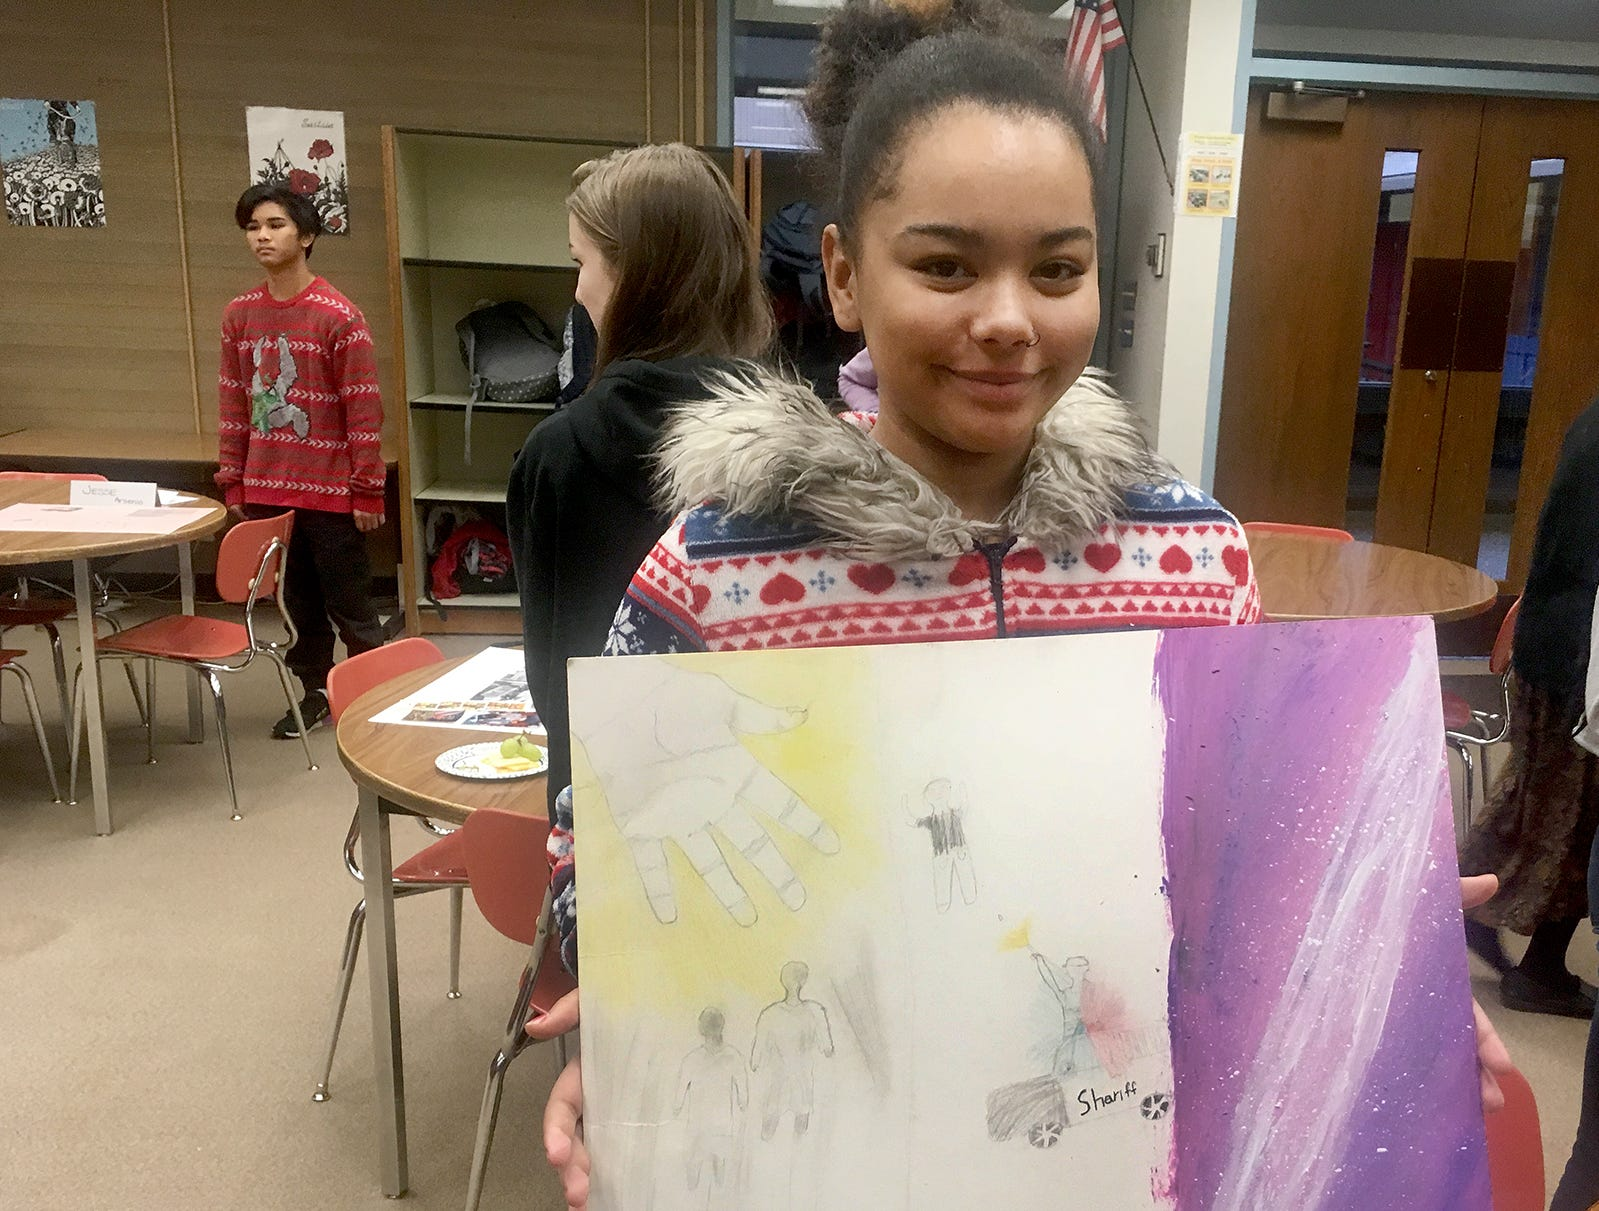 "Fairview Middle School student Kylie Moniz showed a galaxy of stars in her artwork for a project in Amy White's U.S. History class, focused on the history of racial discrimination. Moniz was one of three students of color in her first grade class. ""I felt like I was floating alone in a galaxy,"" she said."